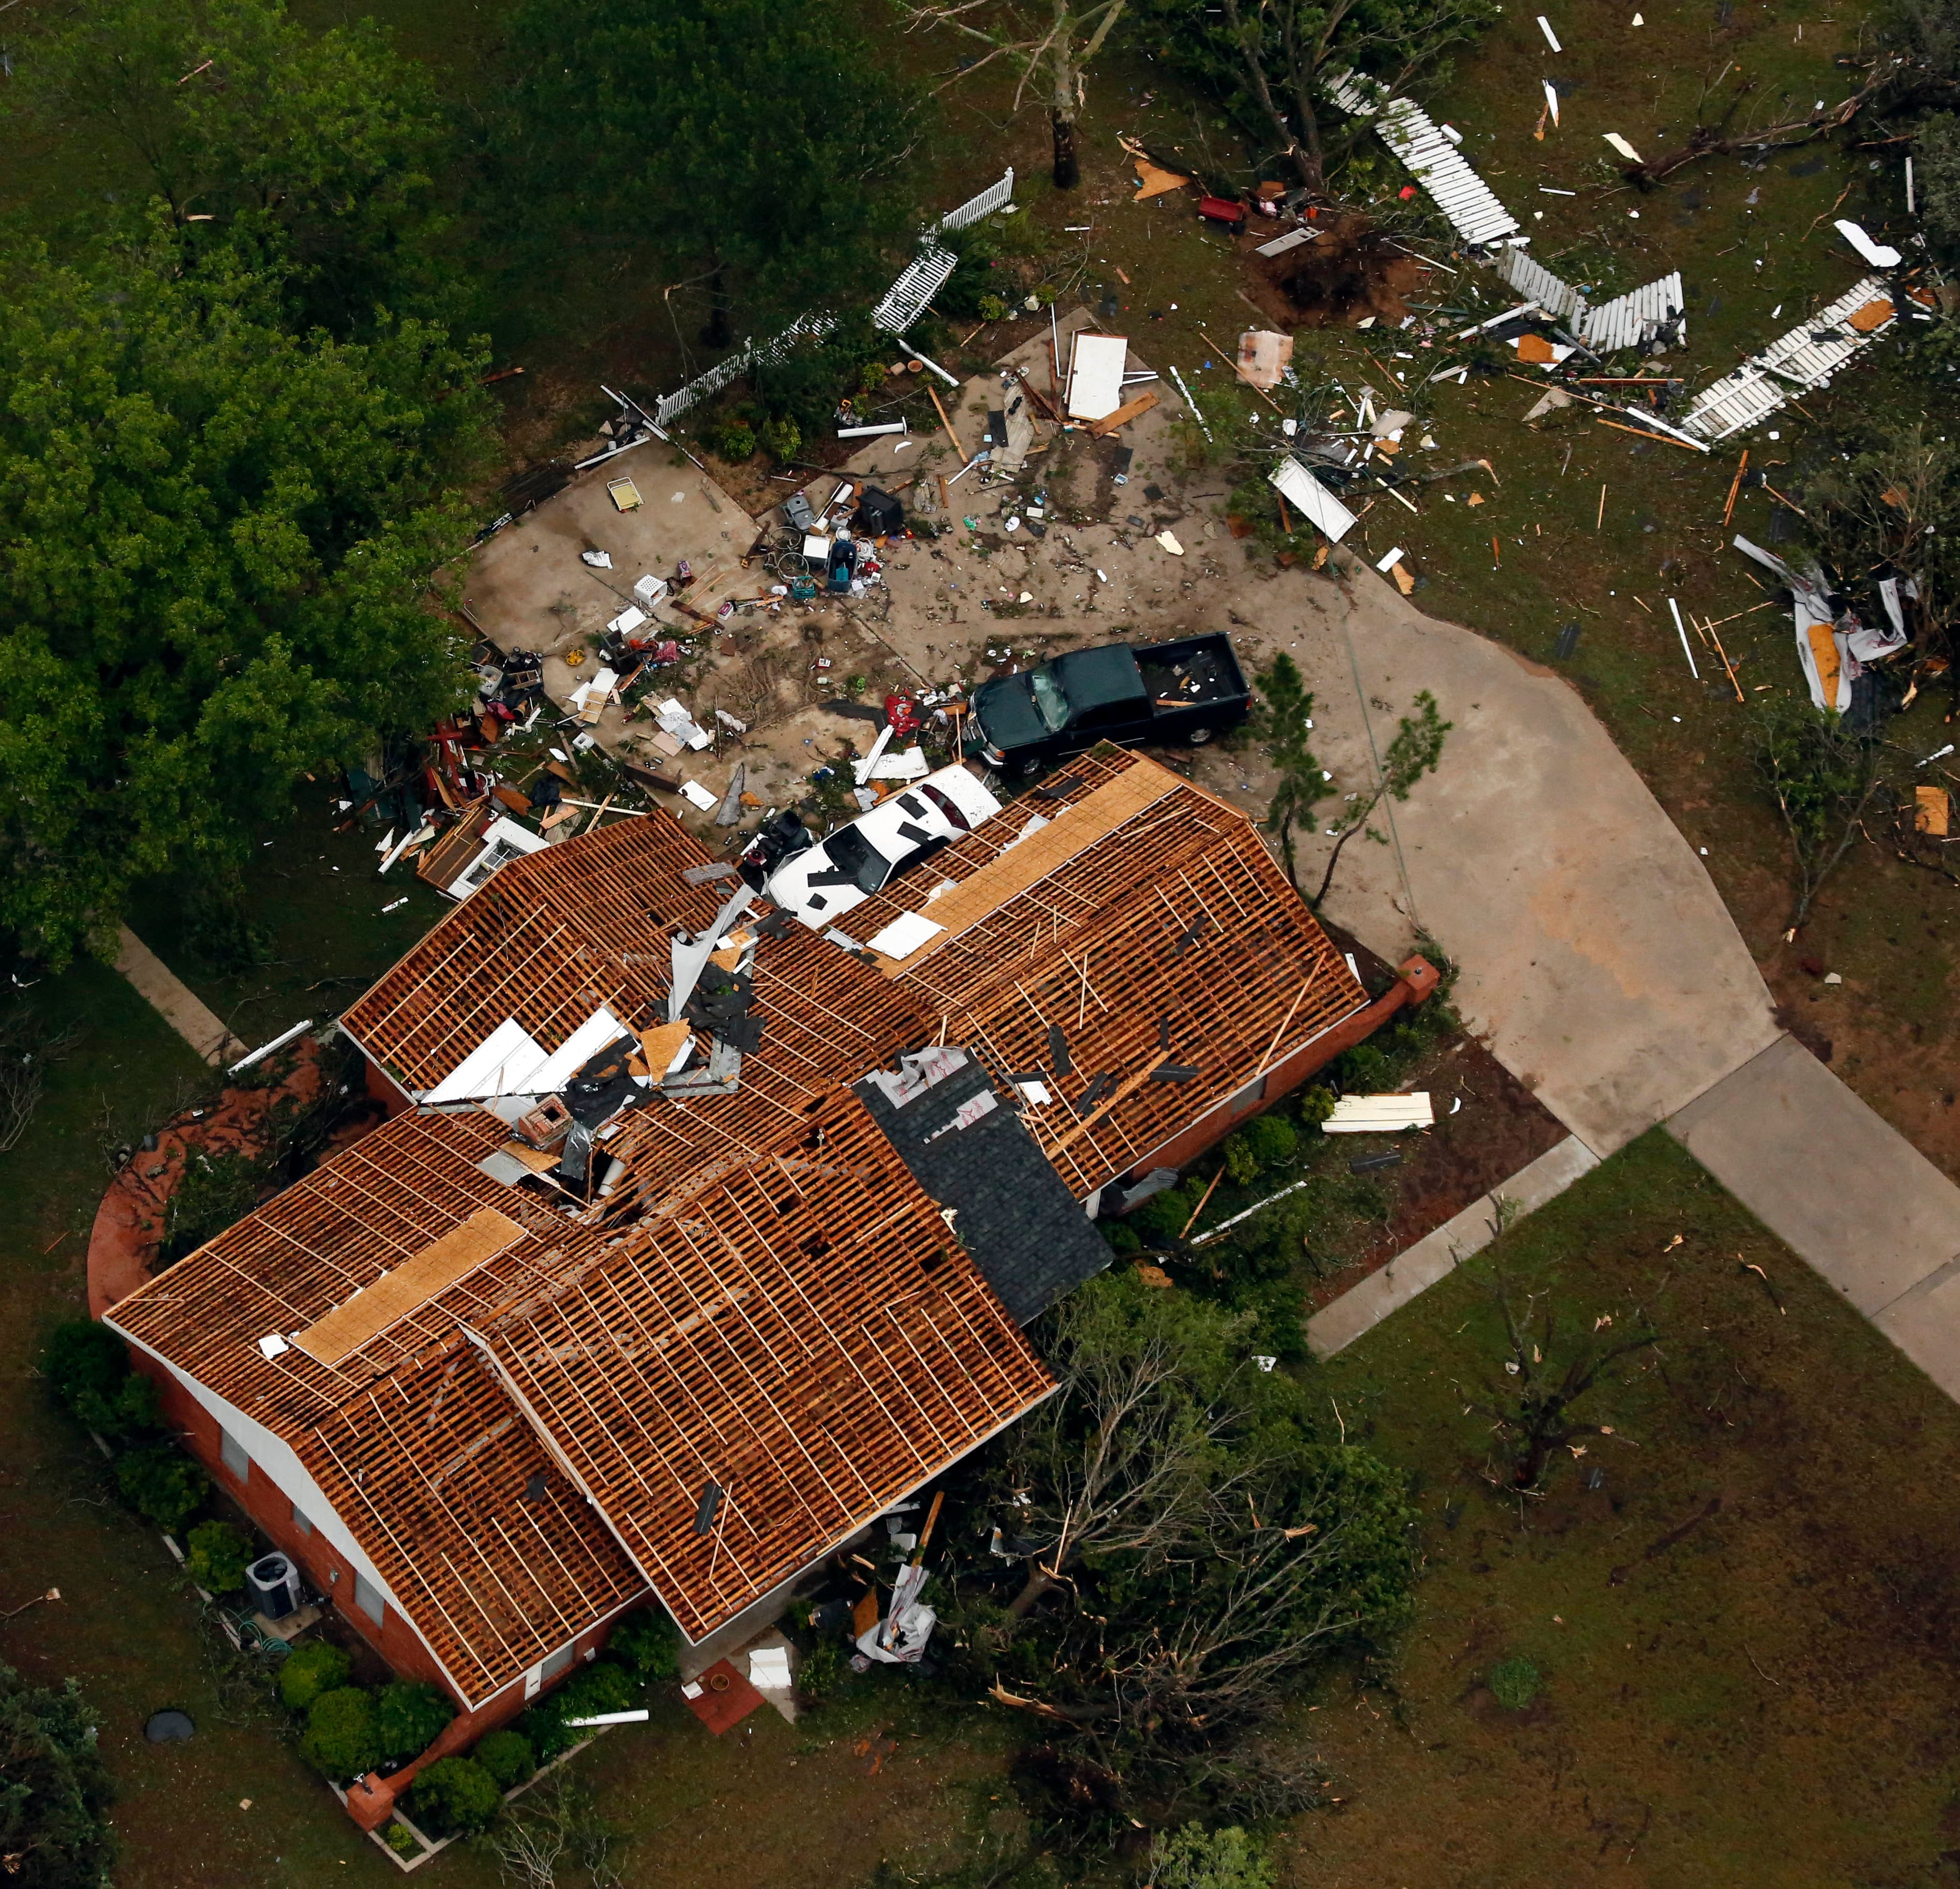 This aerial photo shows a home missing roofing and surrounded by debris in Cleburne, Texas.